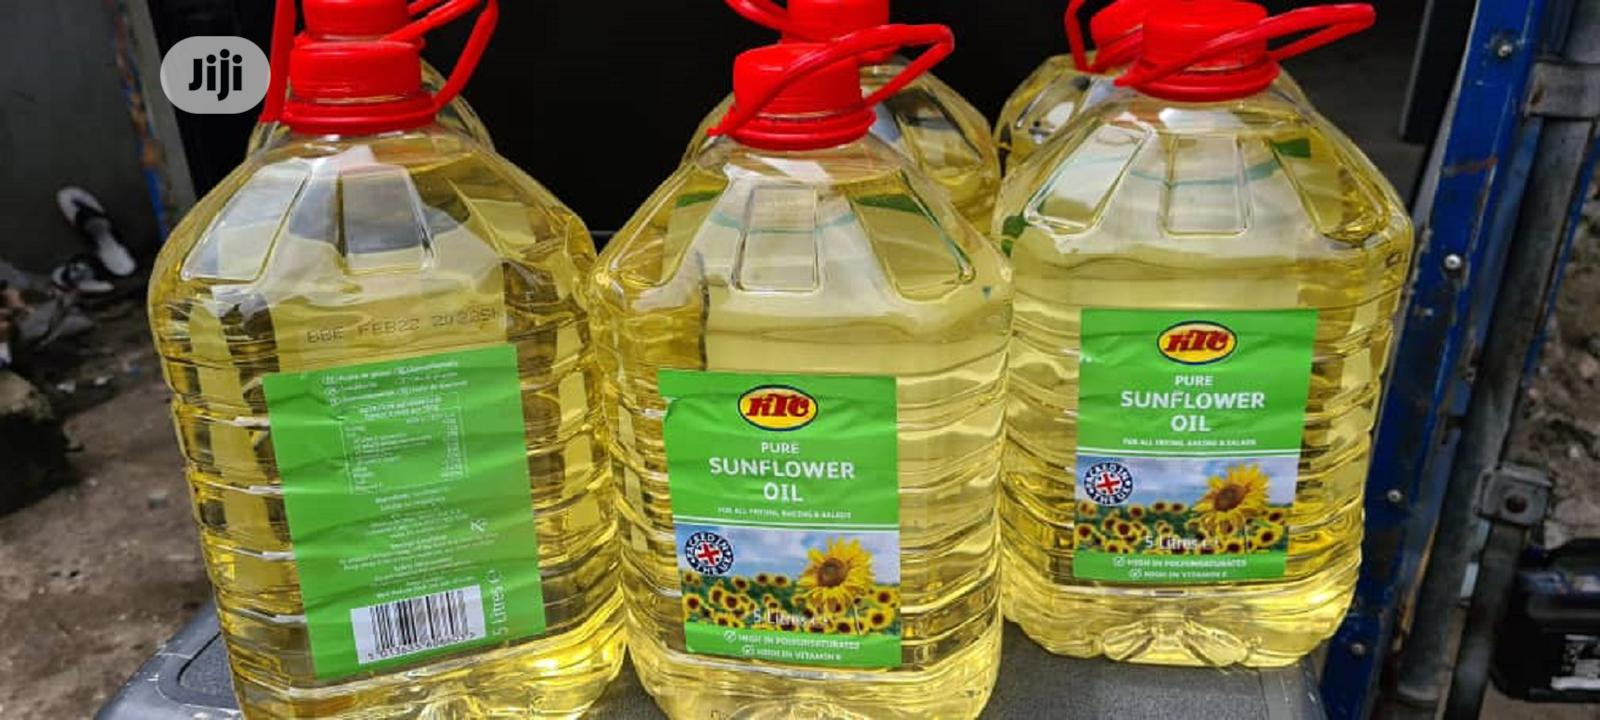 KTC Pure Sunflower Oil 5litres (Original)